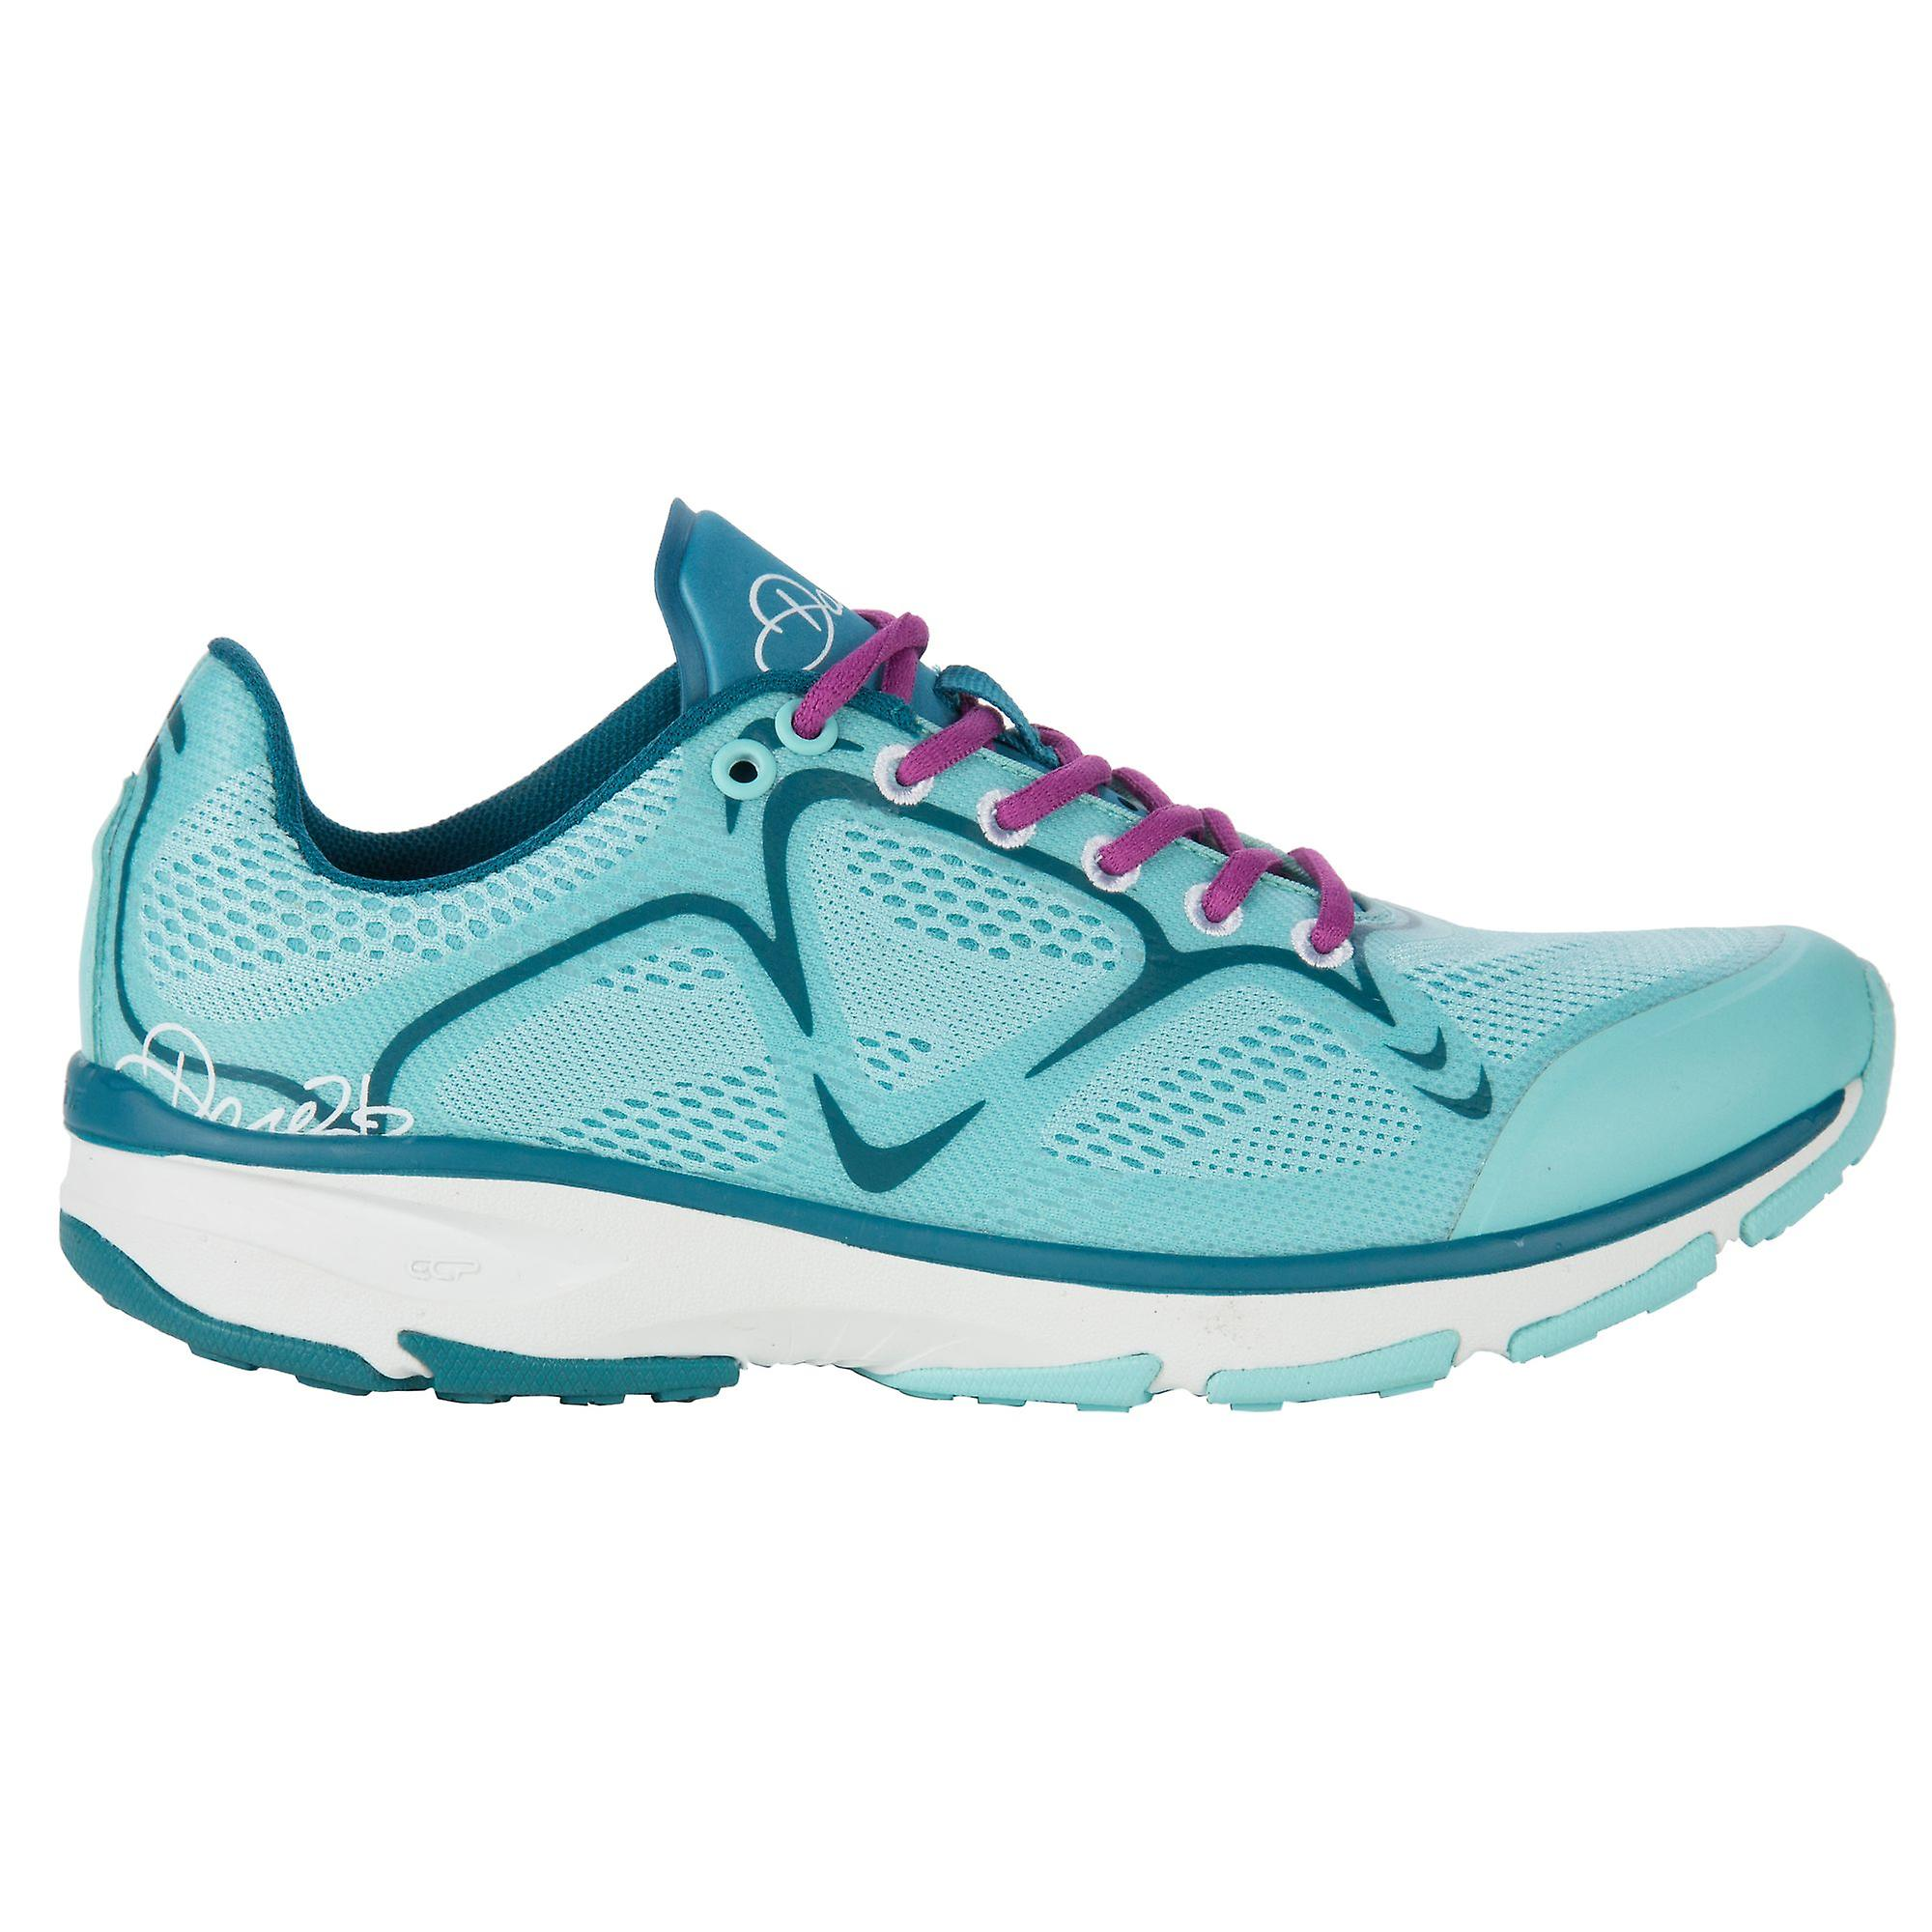 Dare 2B Shoes Womens/Ladies Altare Breathable Training Shoes 2B a3516f